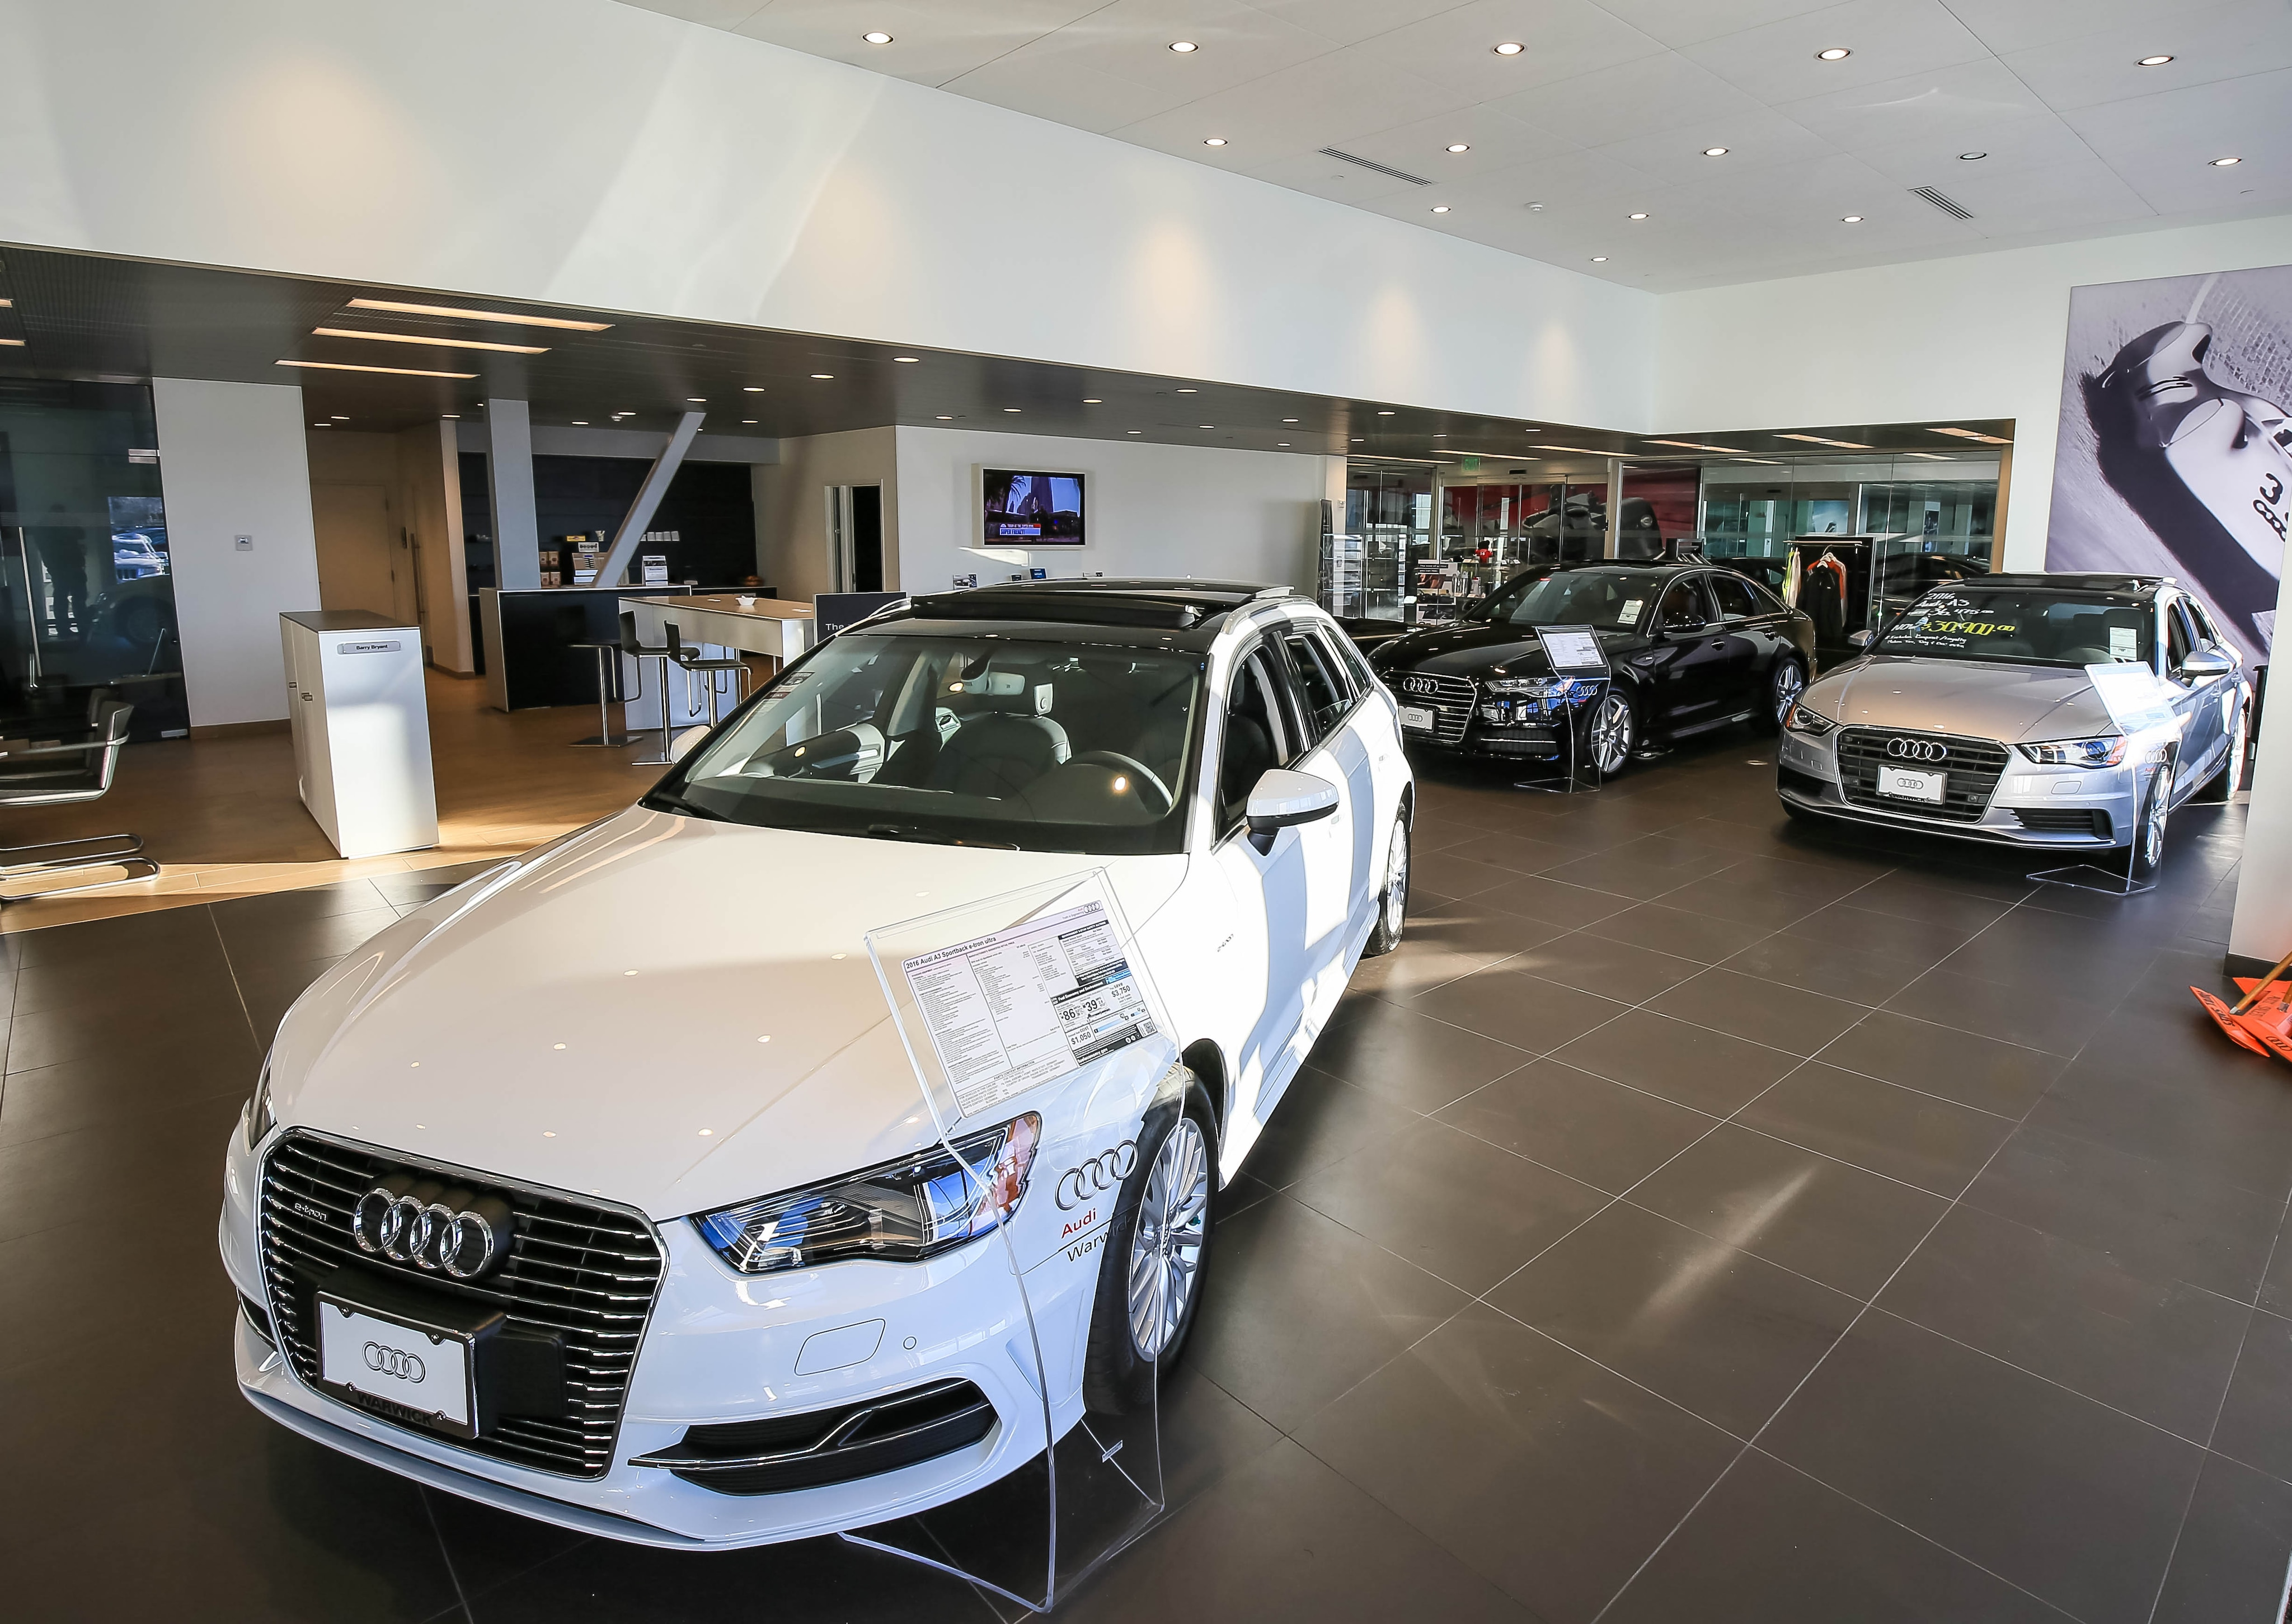 Cars For Sale In Ri: New 2019 & Used Luxury Cars & SUVs For Sale